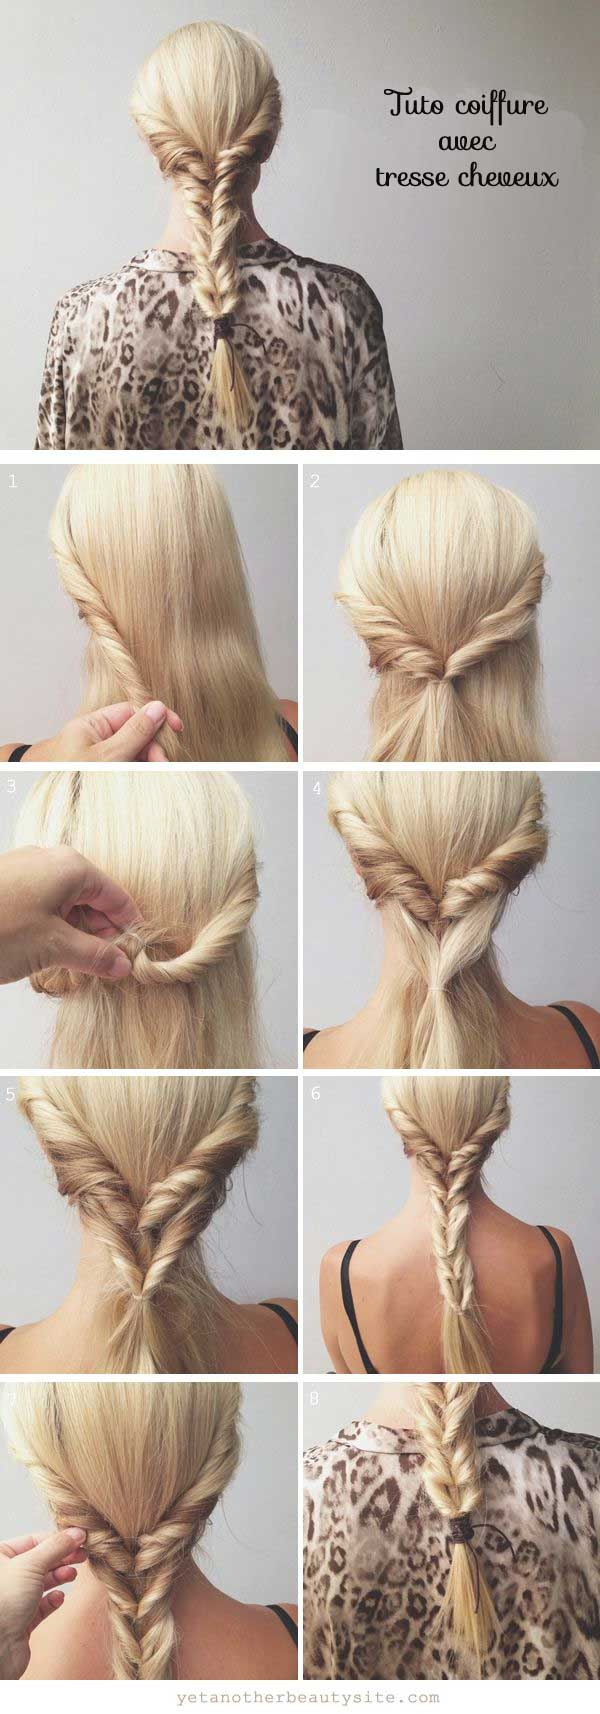 Tuto coiffure facile cheveux longs courts